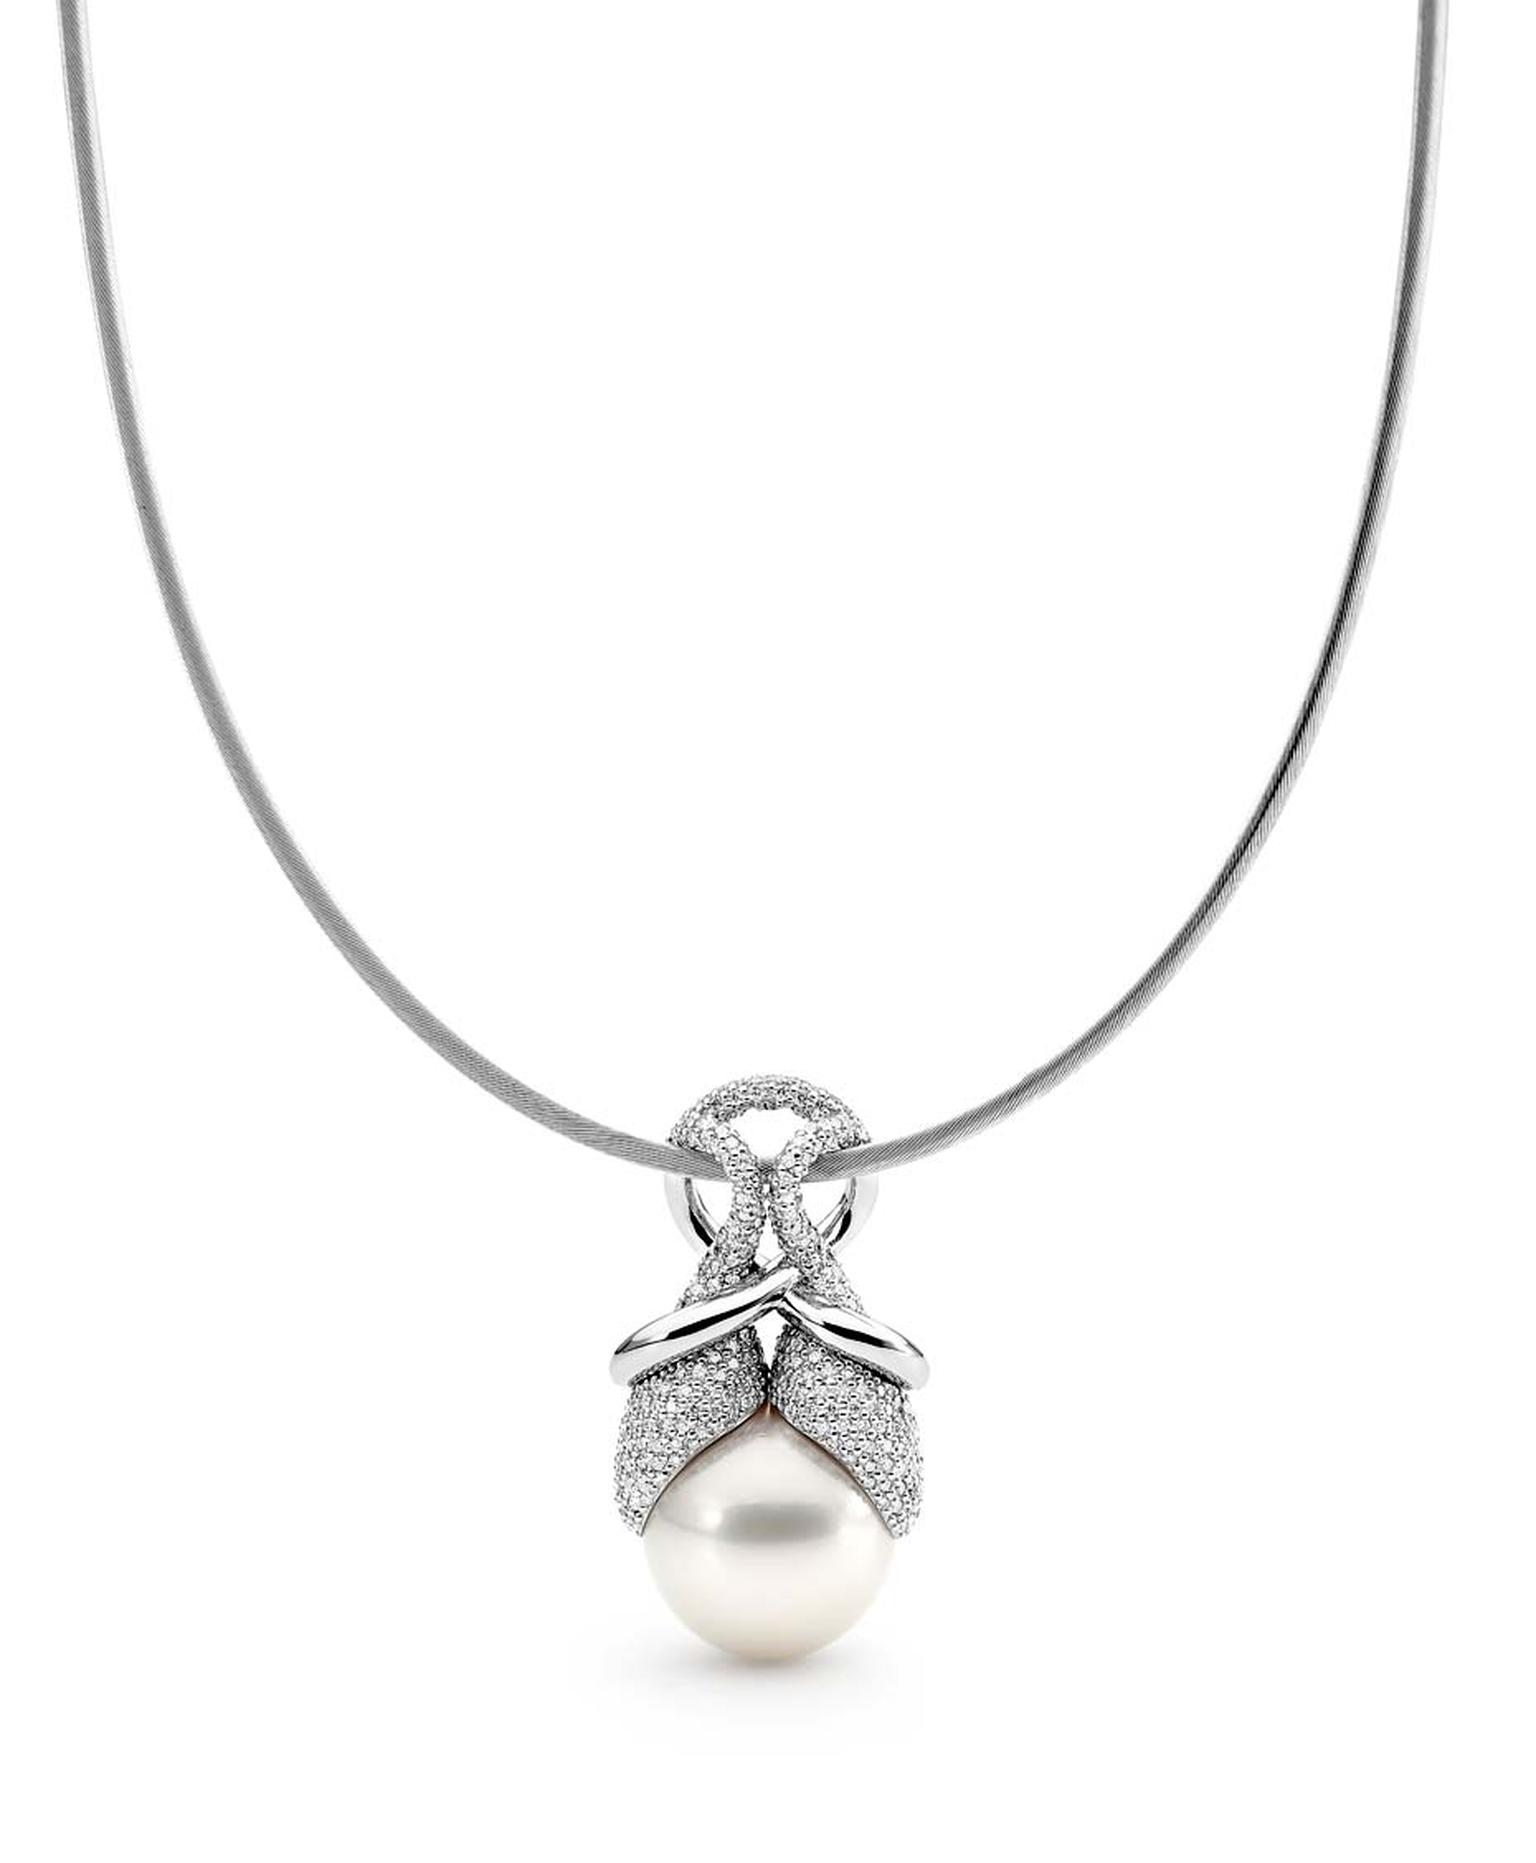 Linneys necklace in white gold with an Australian South Sea pearl and diamonds.